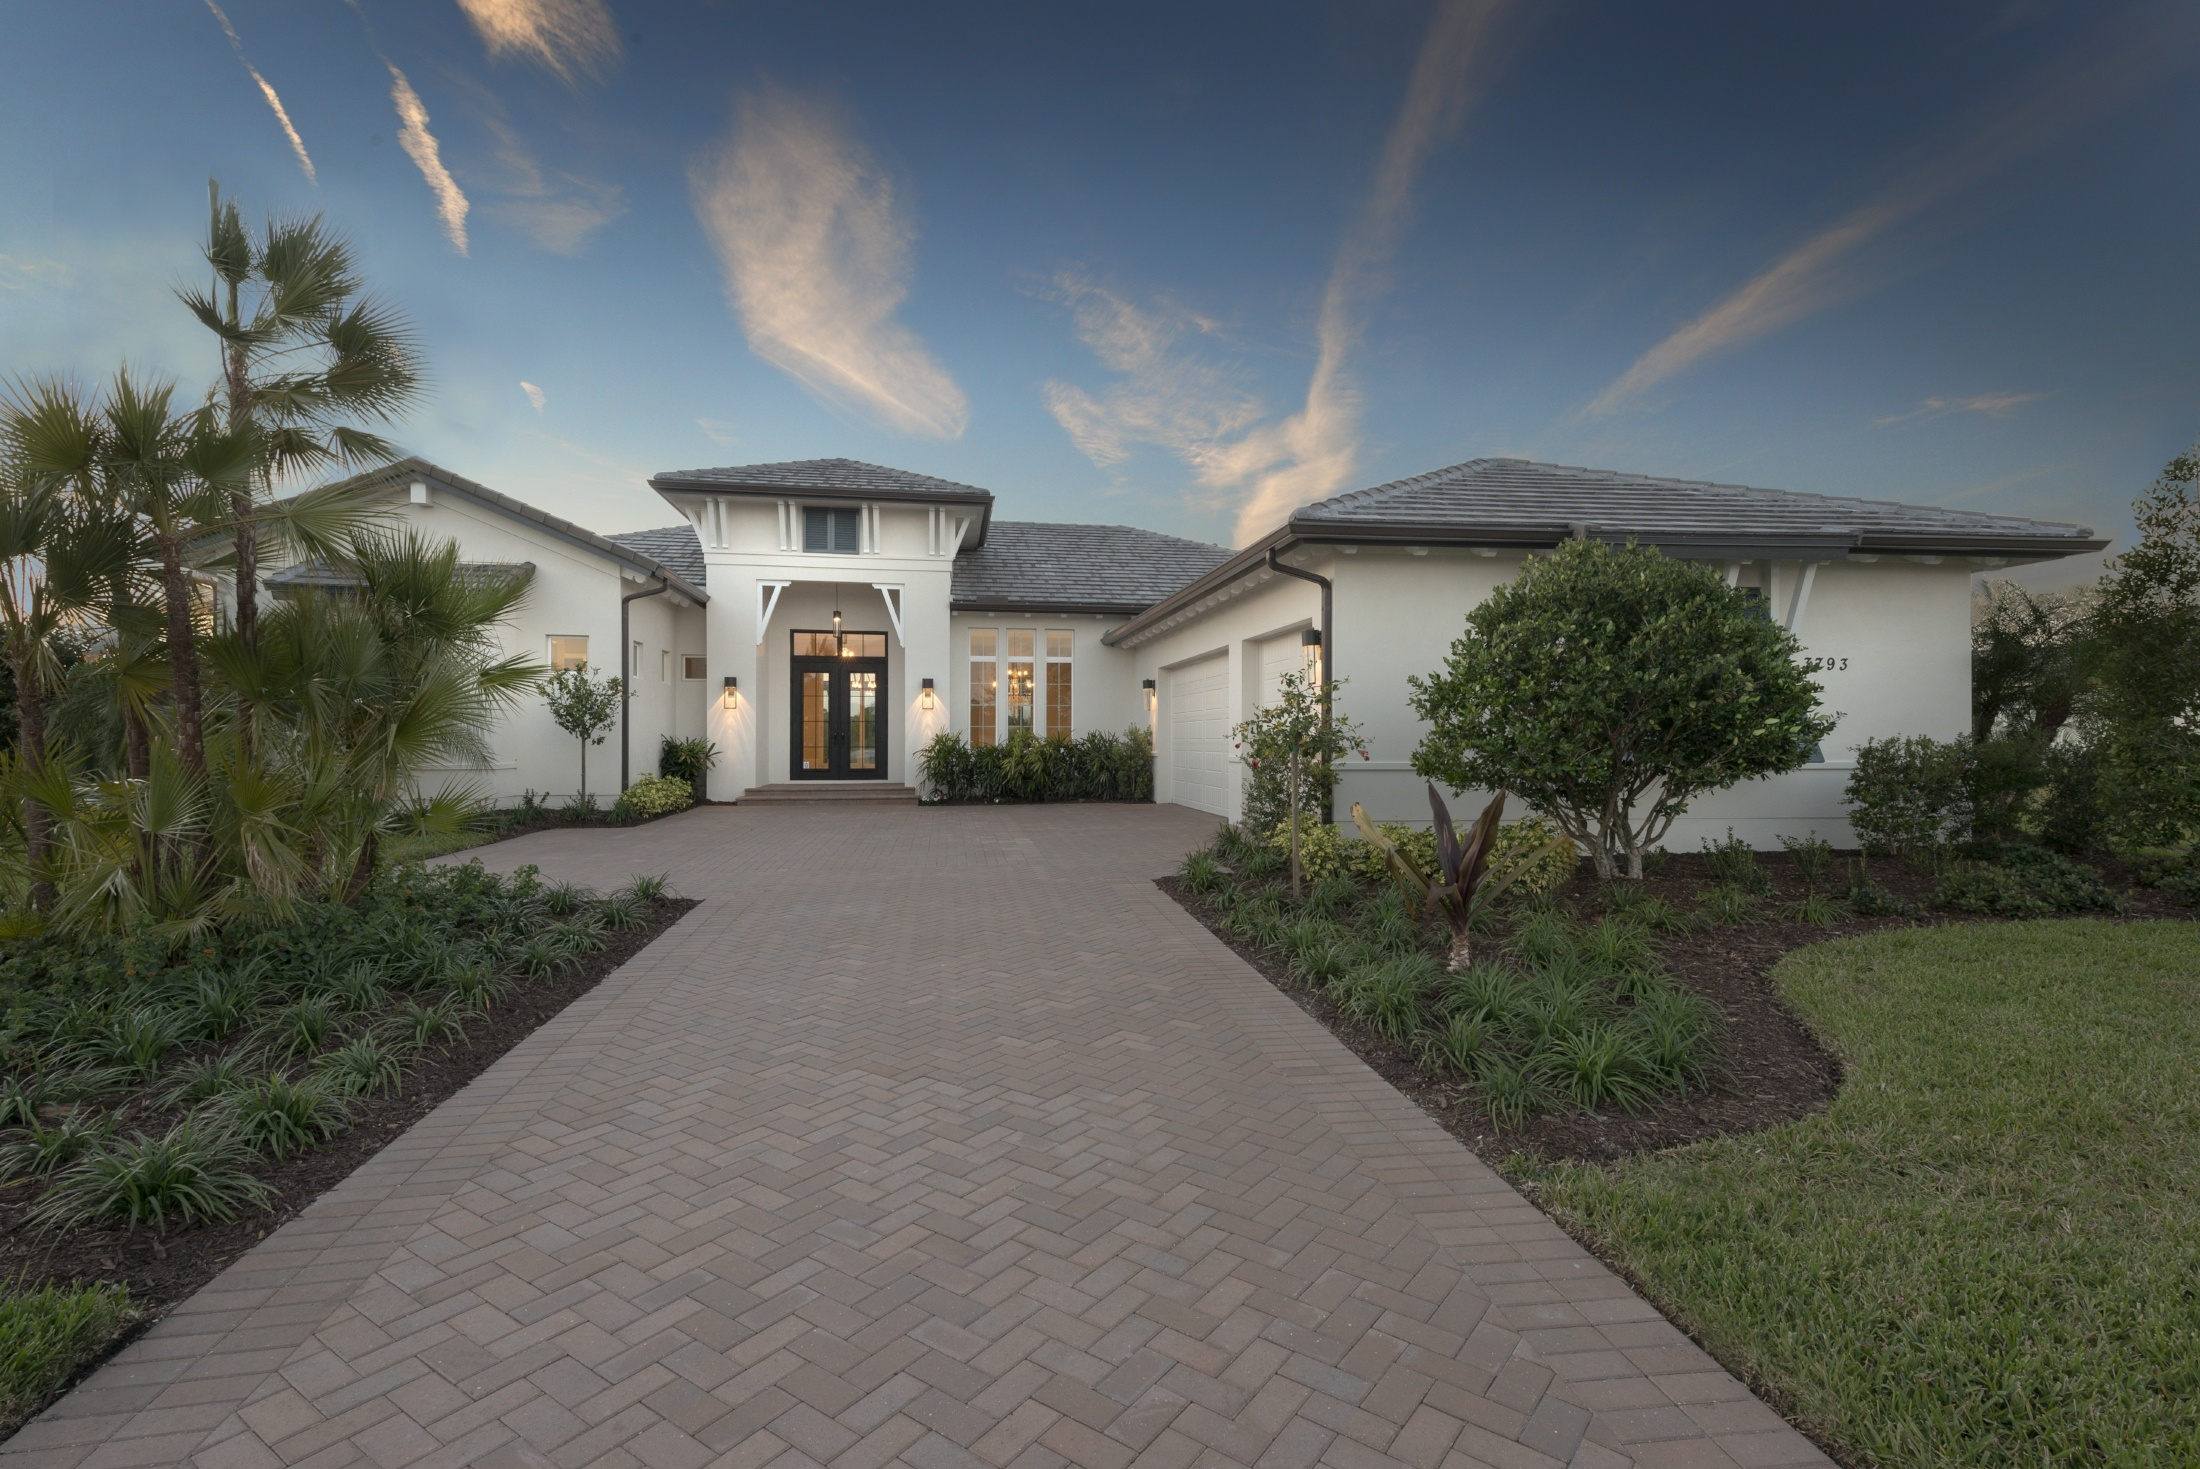 The Isabella Grande by London Bay Homes at The Founders Club-796141-edited